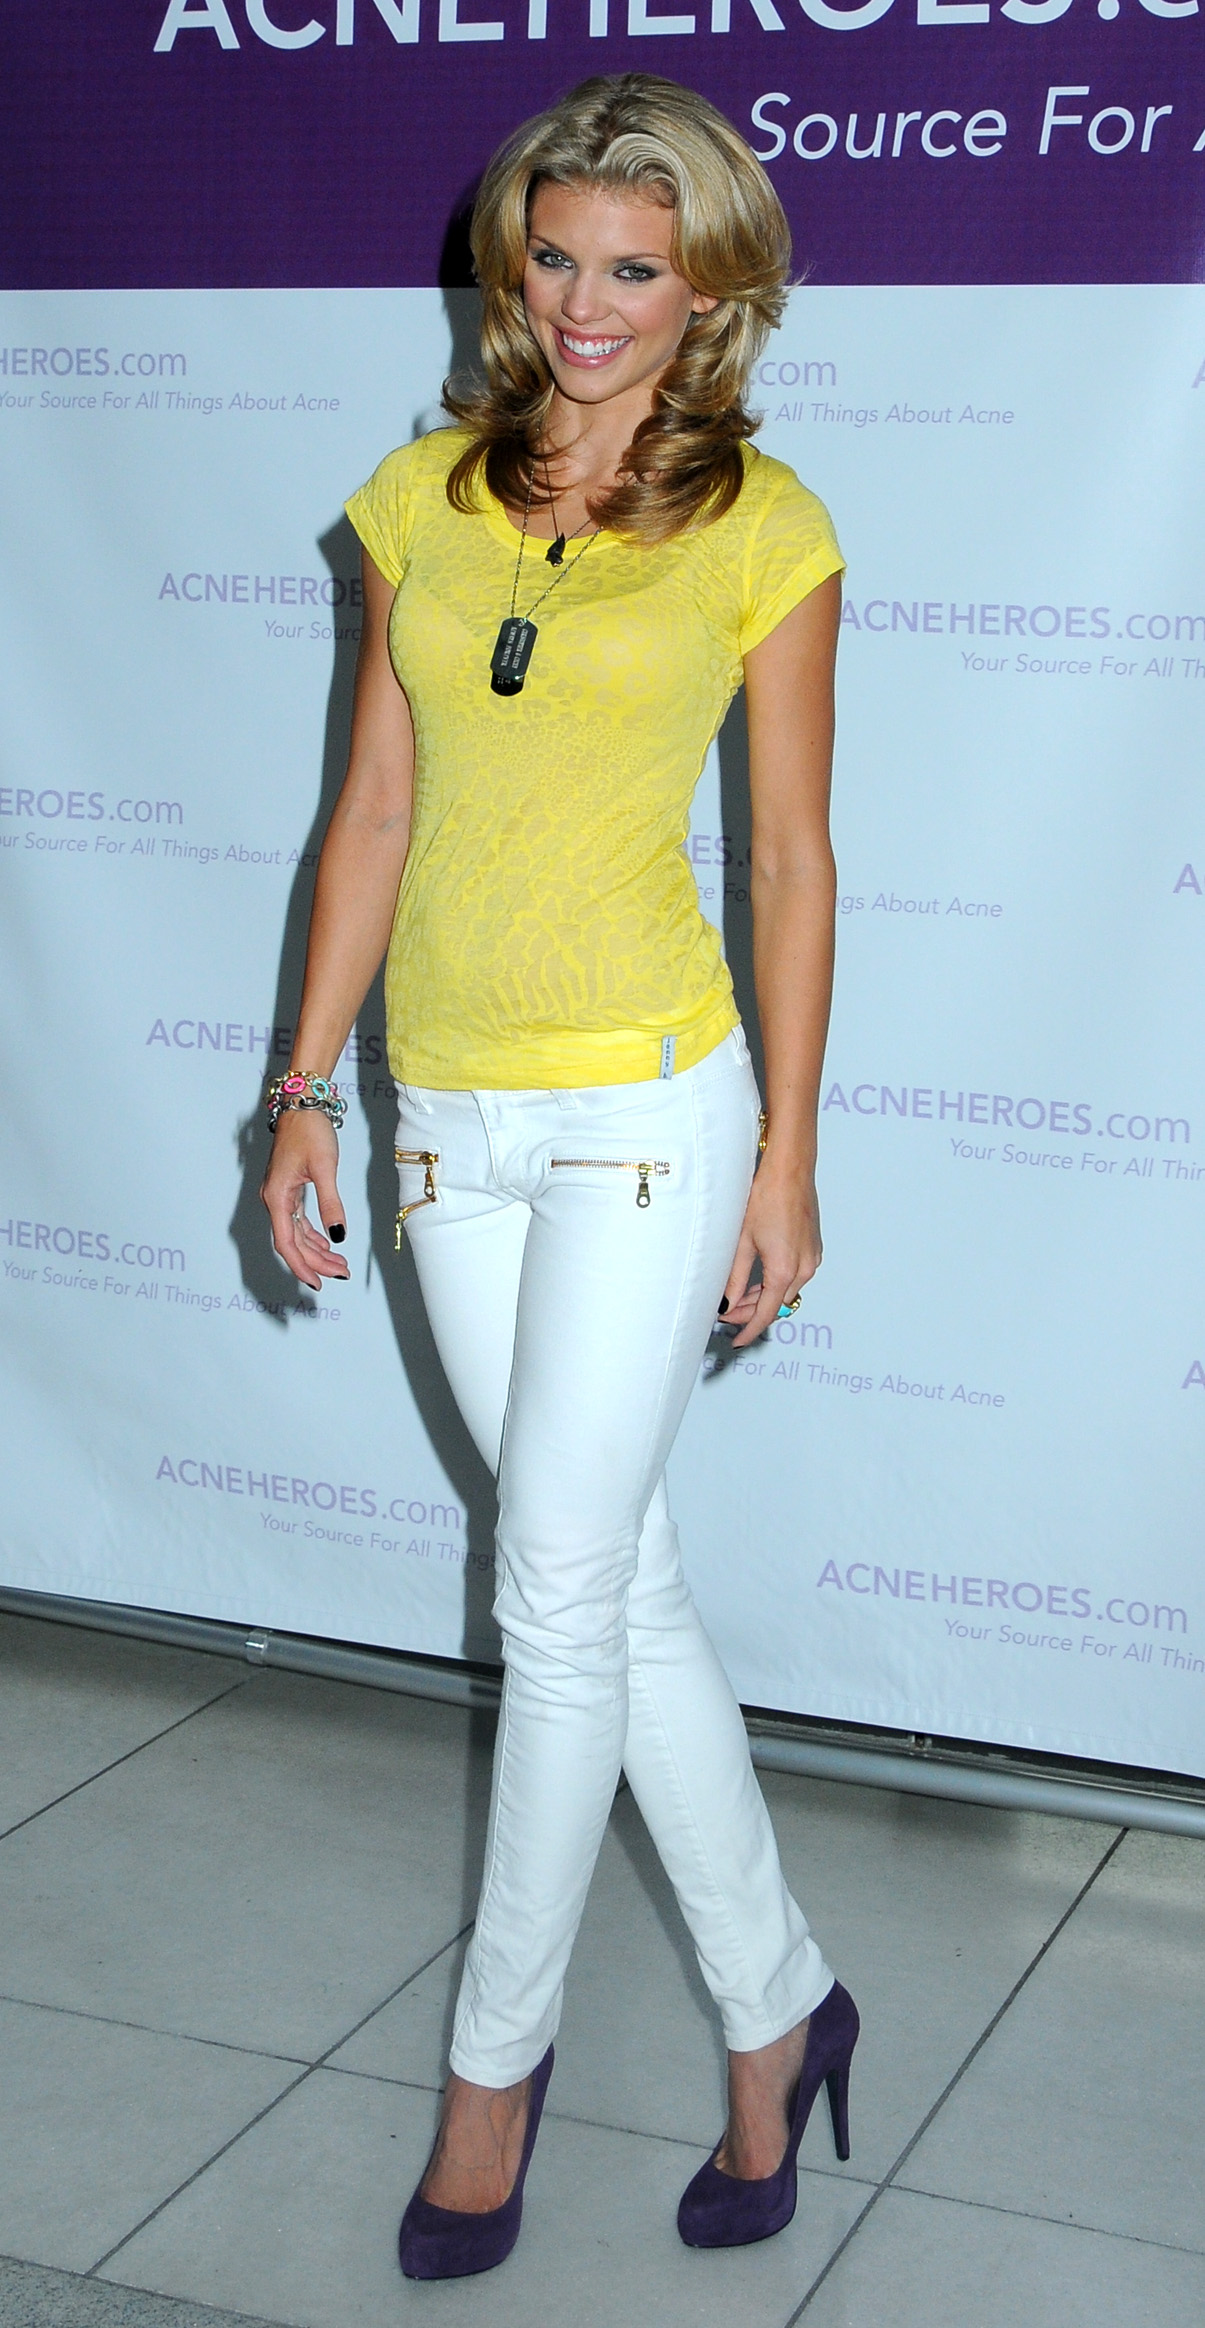 d0e6e3ab0ca AnnaLynne McCord Has Hot Legs in White Skinny Jeans and High Heels